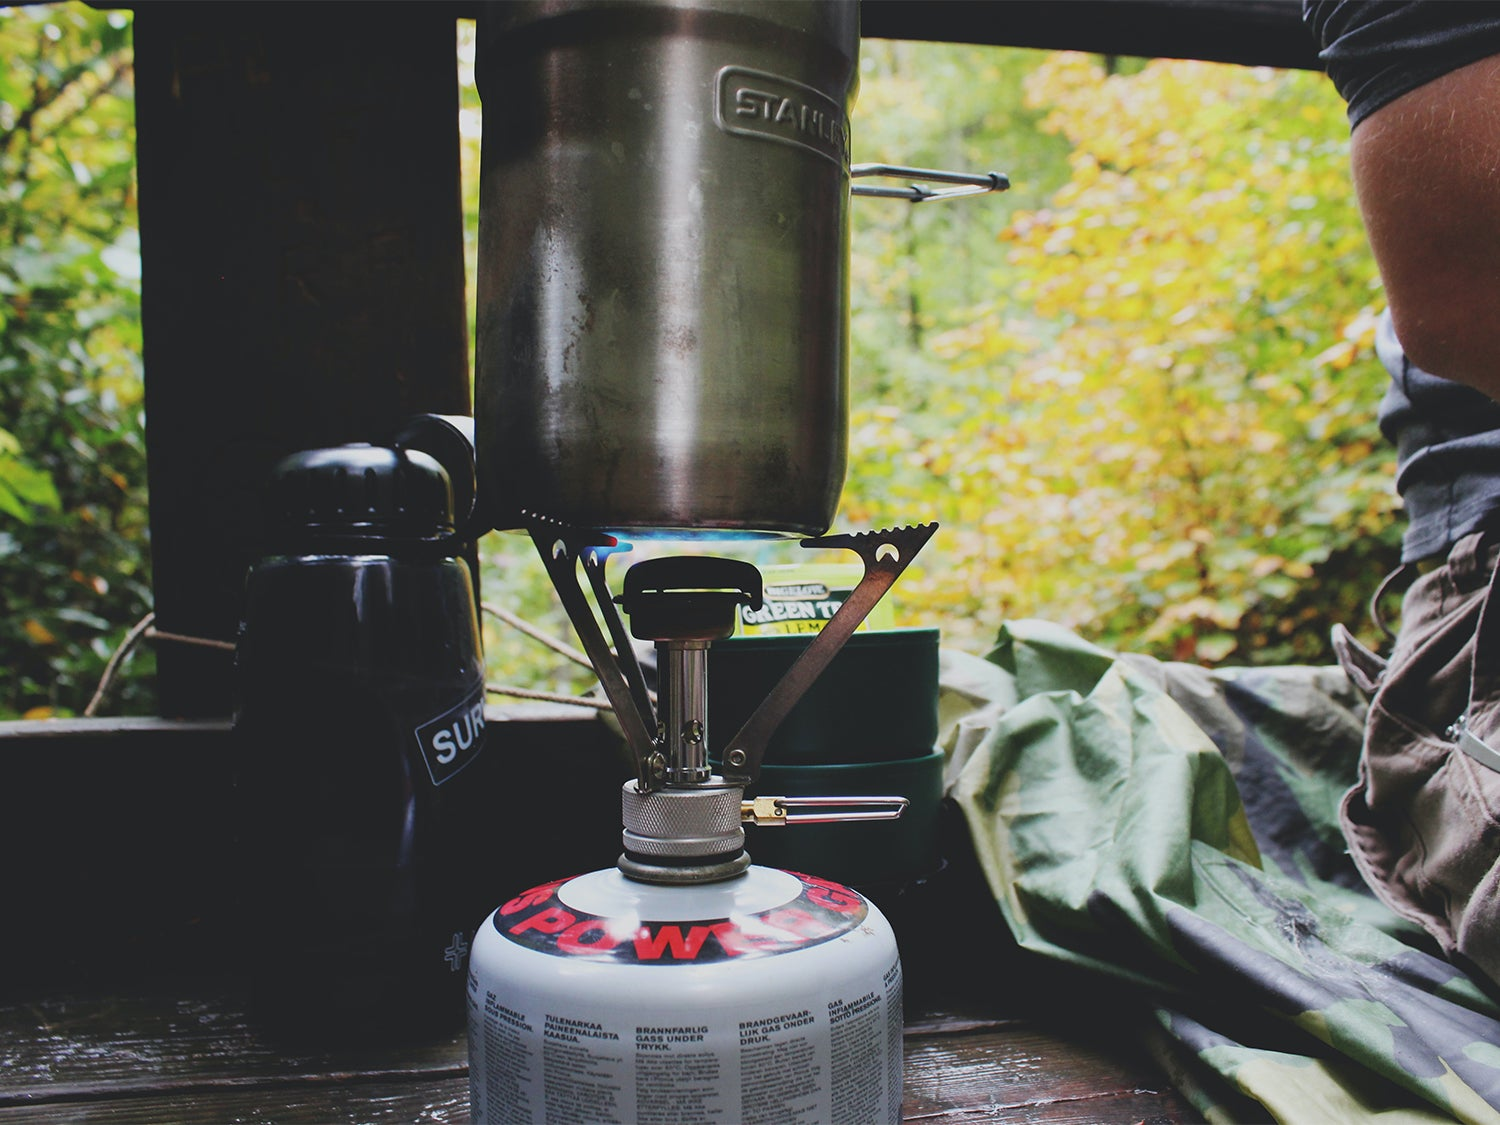 The best backpacking stove on a table next to a person.